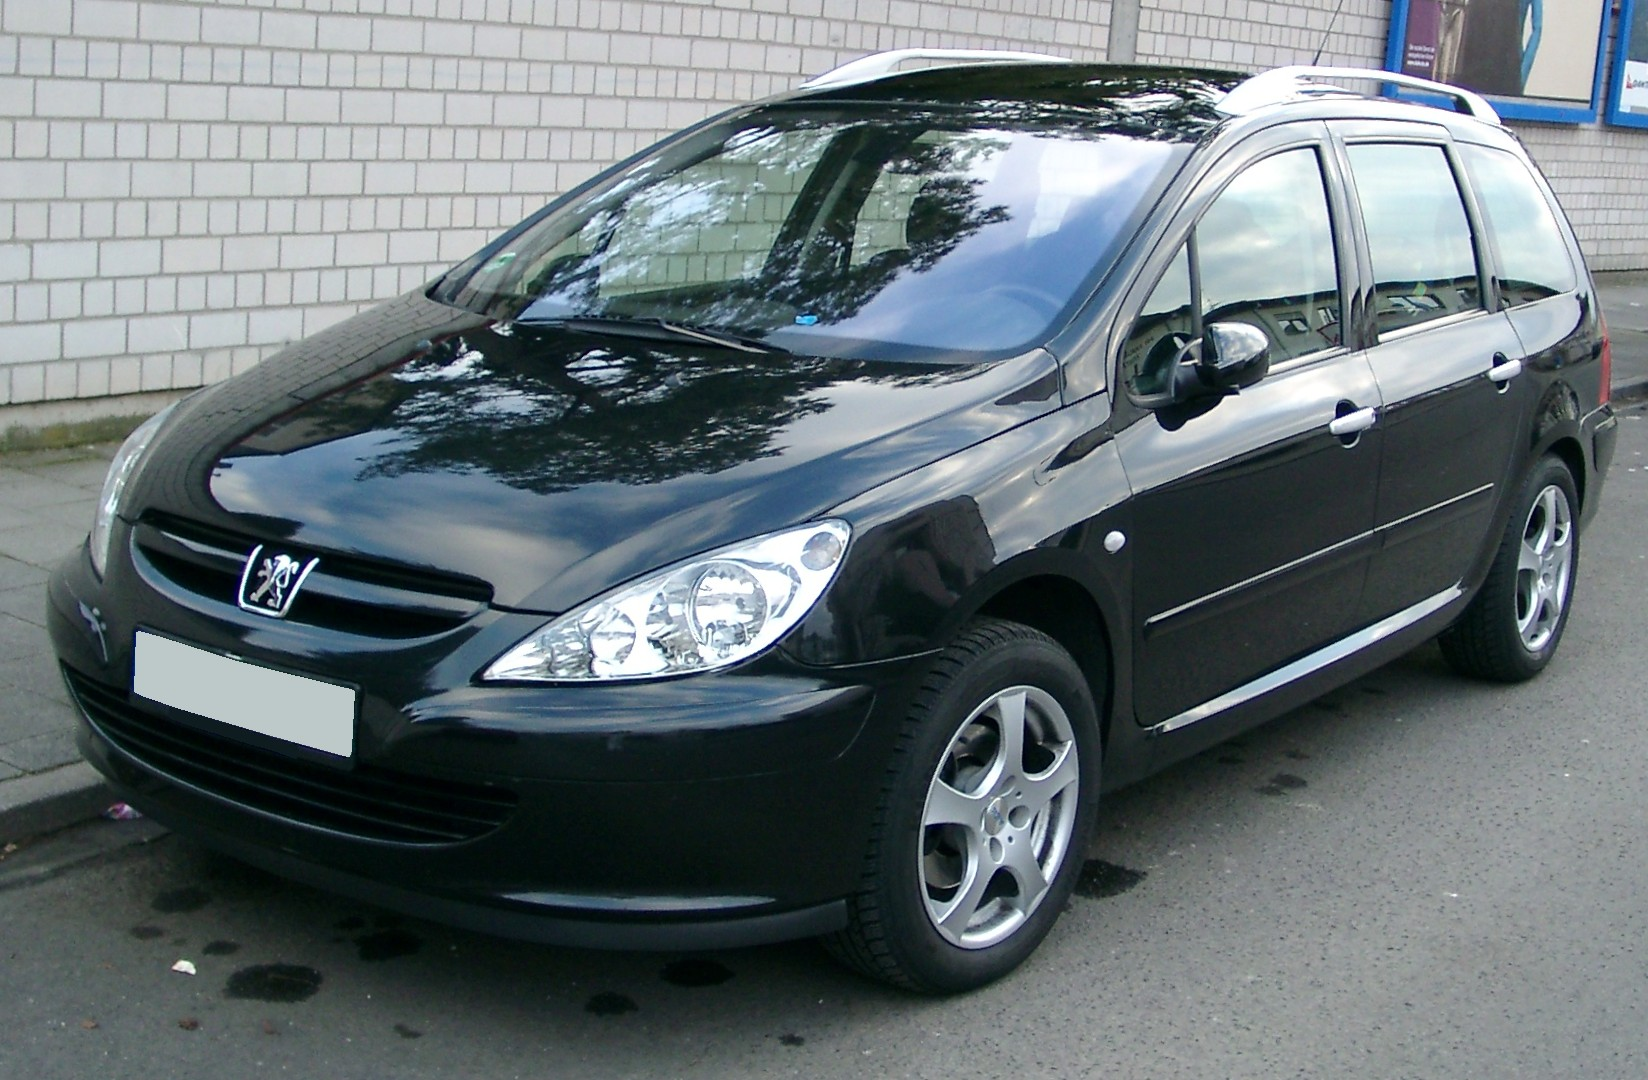 peugeot 307 sw photos reviews news specs buy car. Black Bedroom Furniture Sets. Home Design Ideas